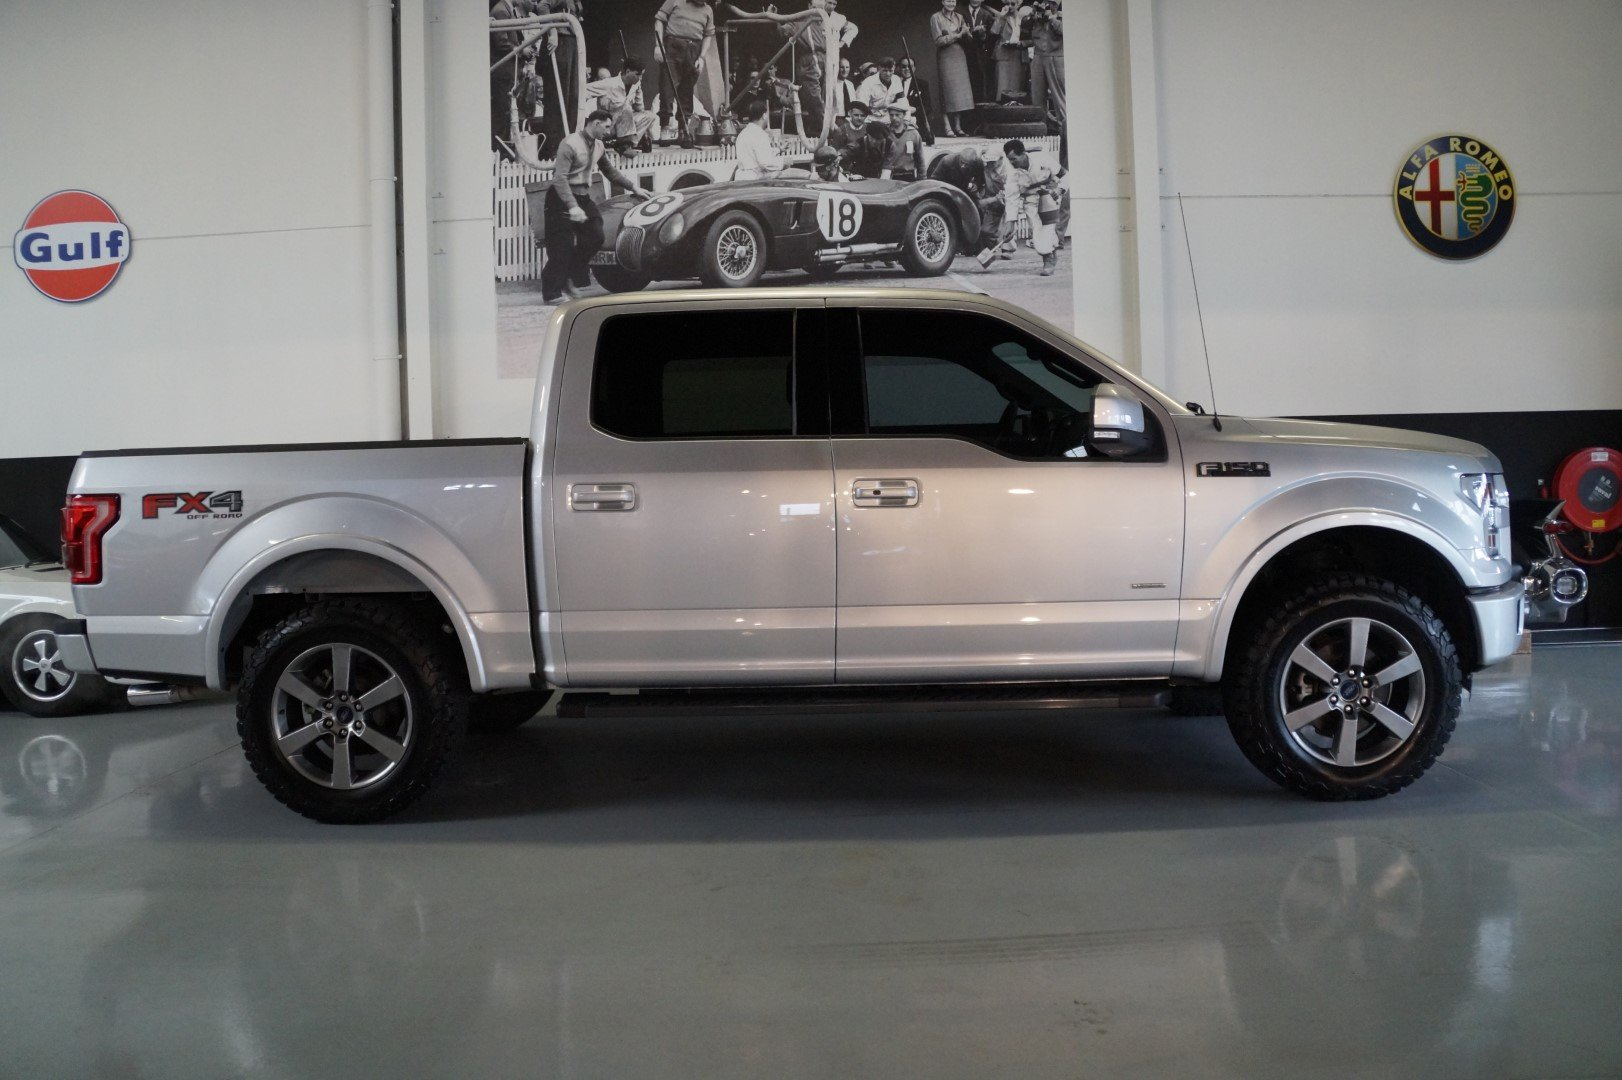 FORD USA F-150 F150 3.5 V6 Lariat 4X4 (2015) For Sale (picture 2 of 6)